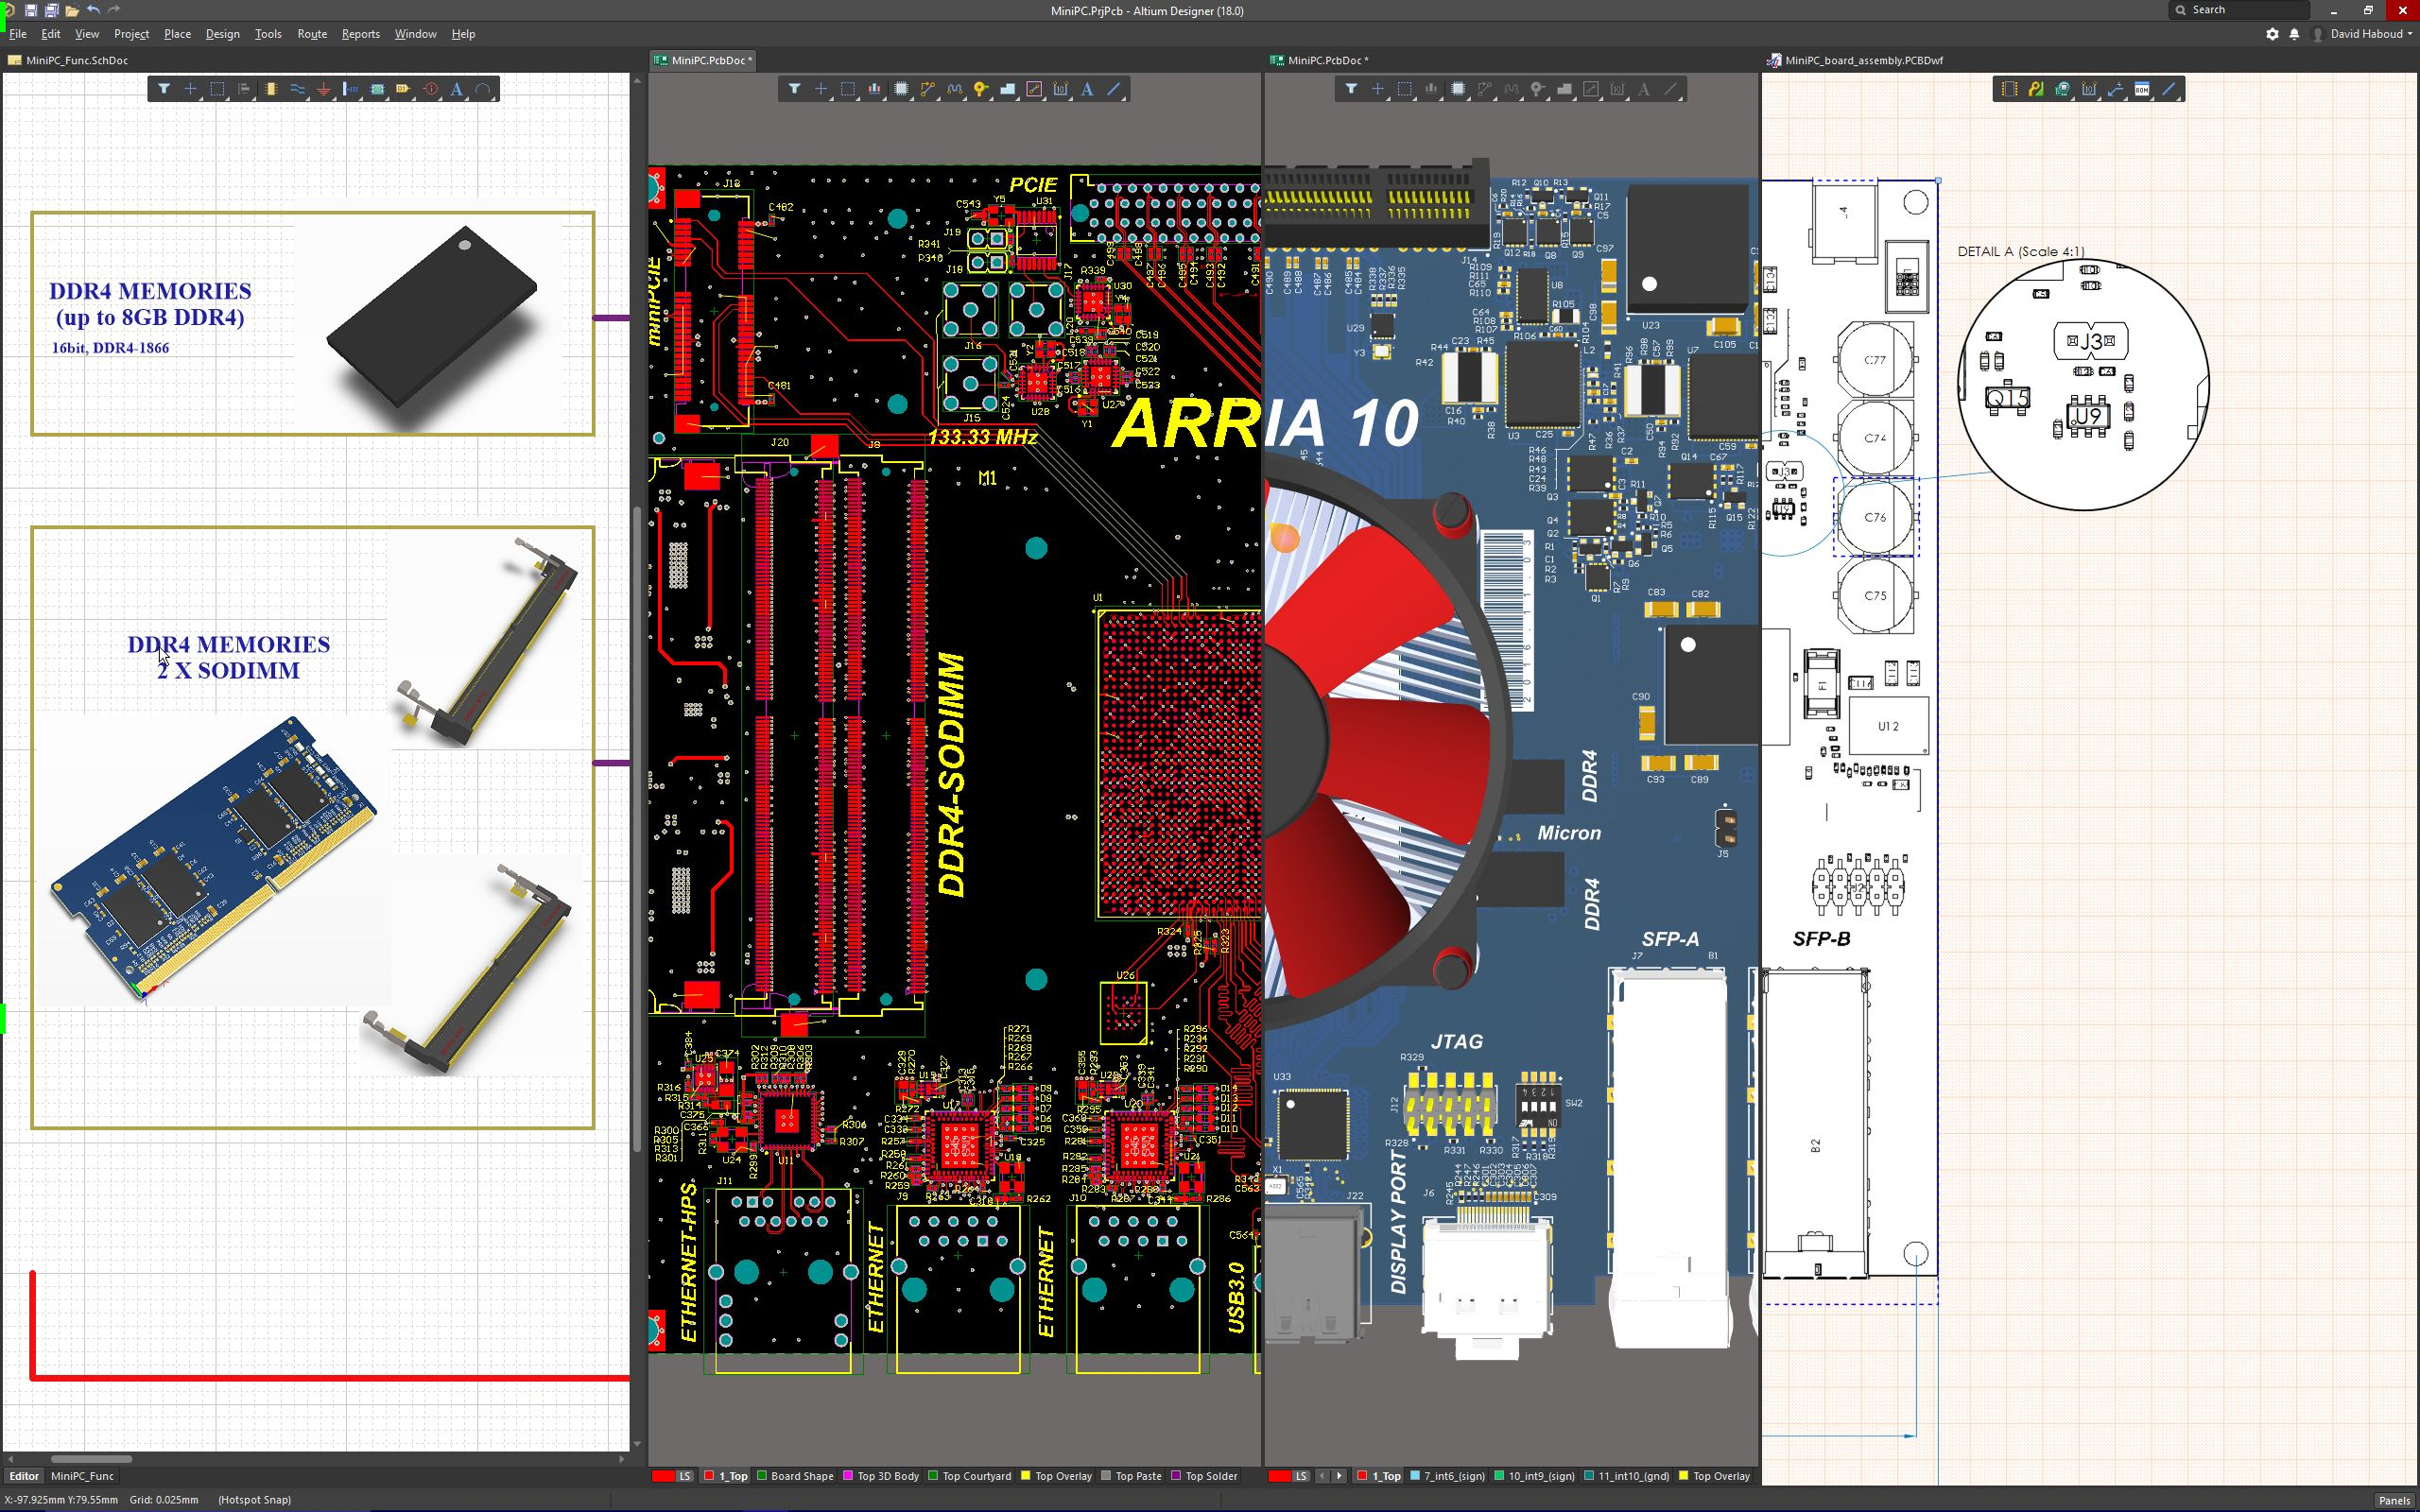 Altium To Implement C3d Modeler In Pcb Software New Application Of Picture Make A 3d Printed Circuit Board That Works Design And Manufacturing Process By